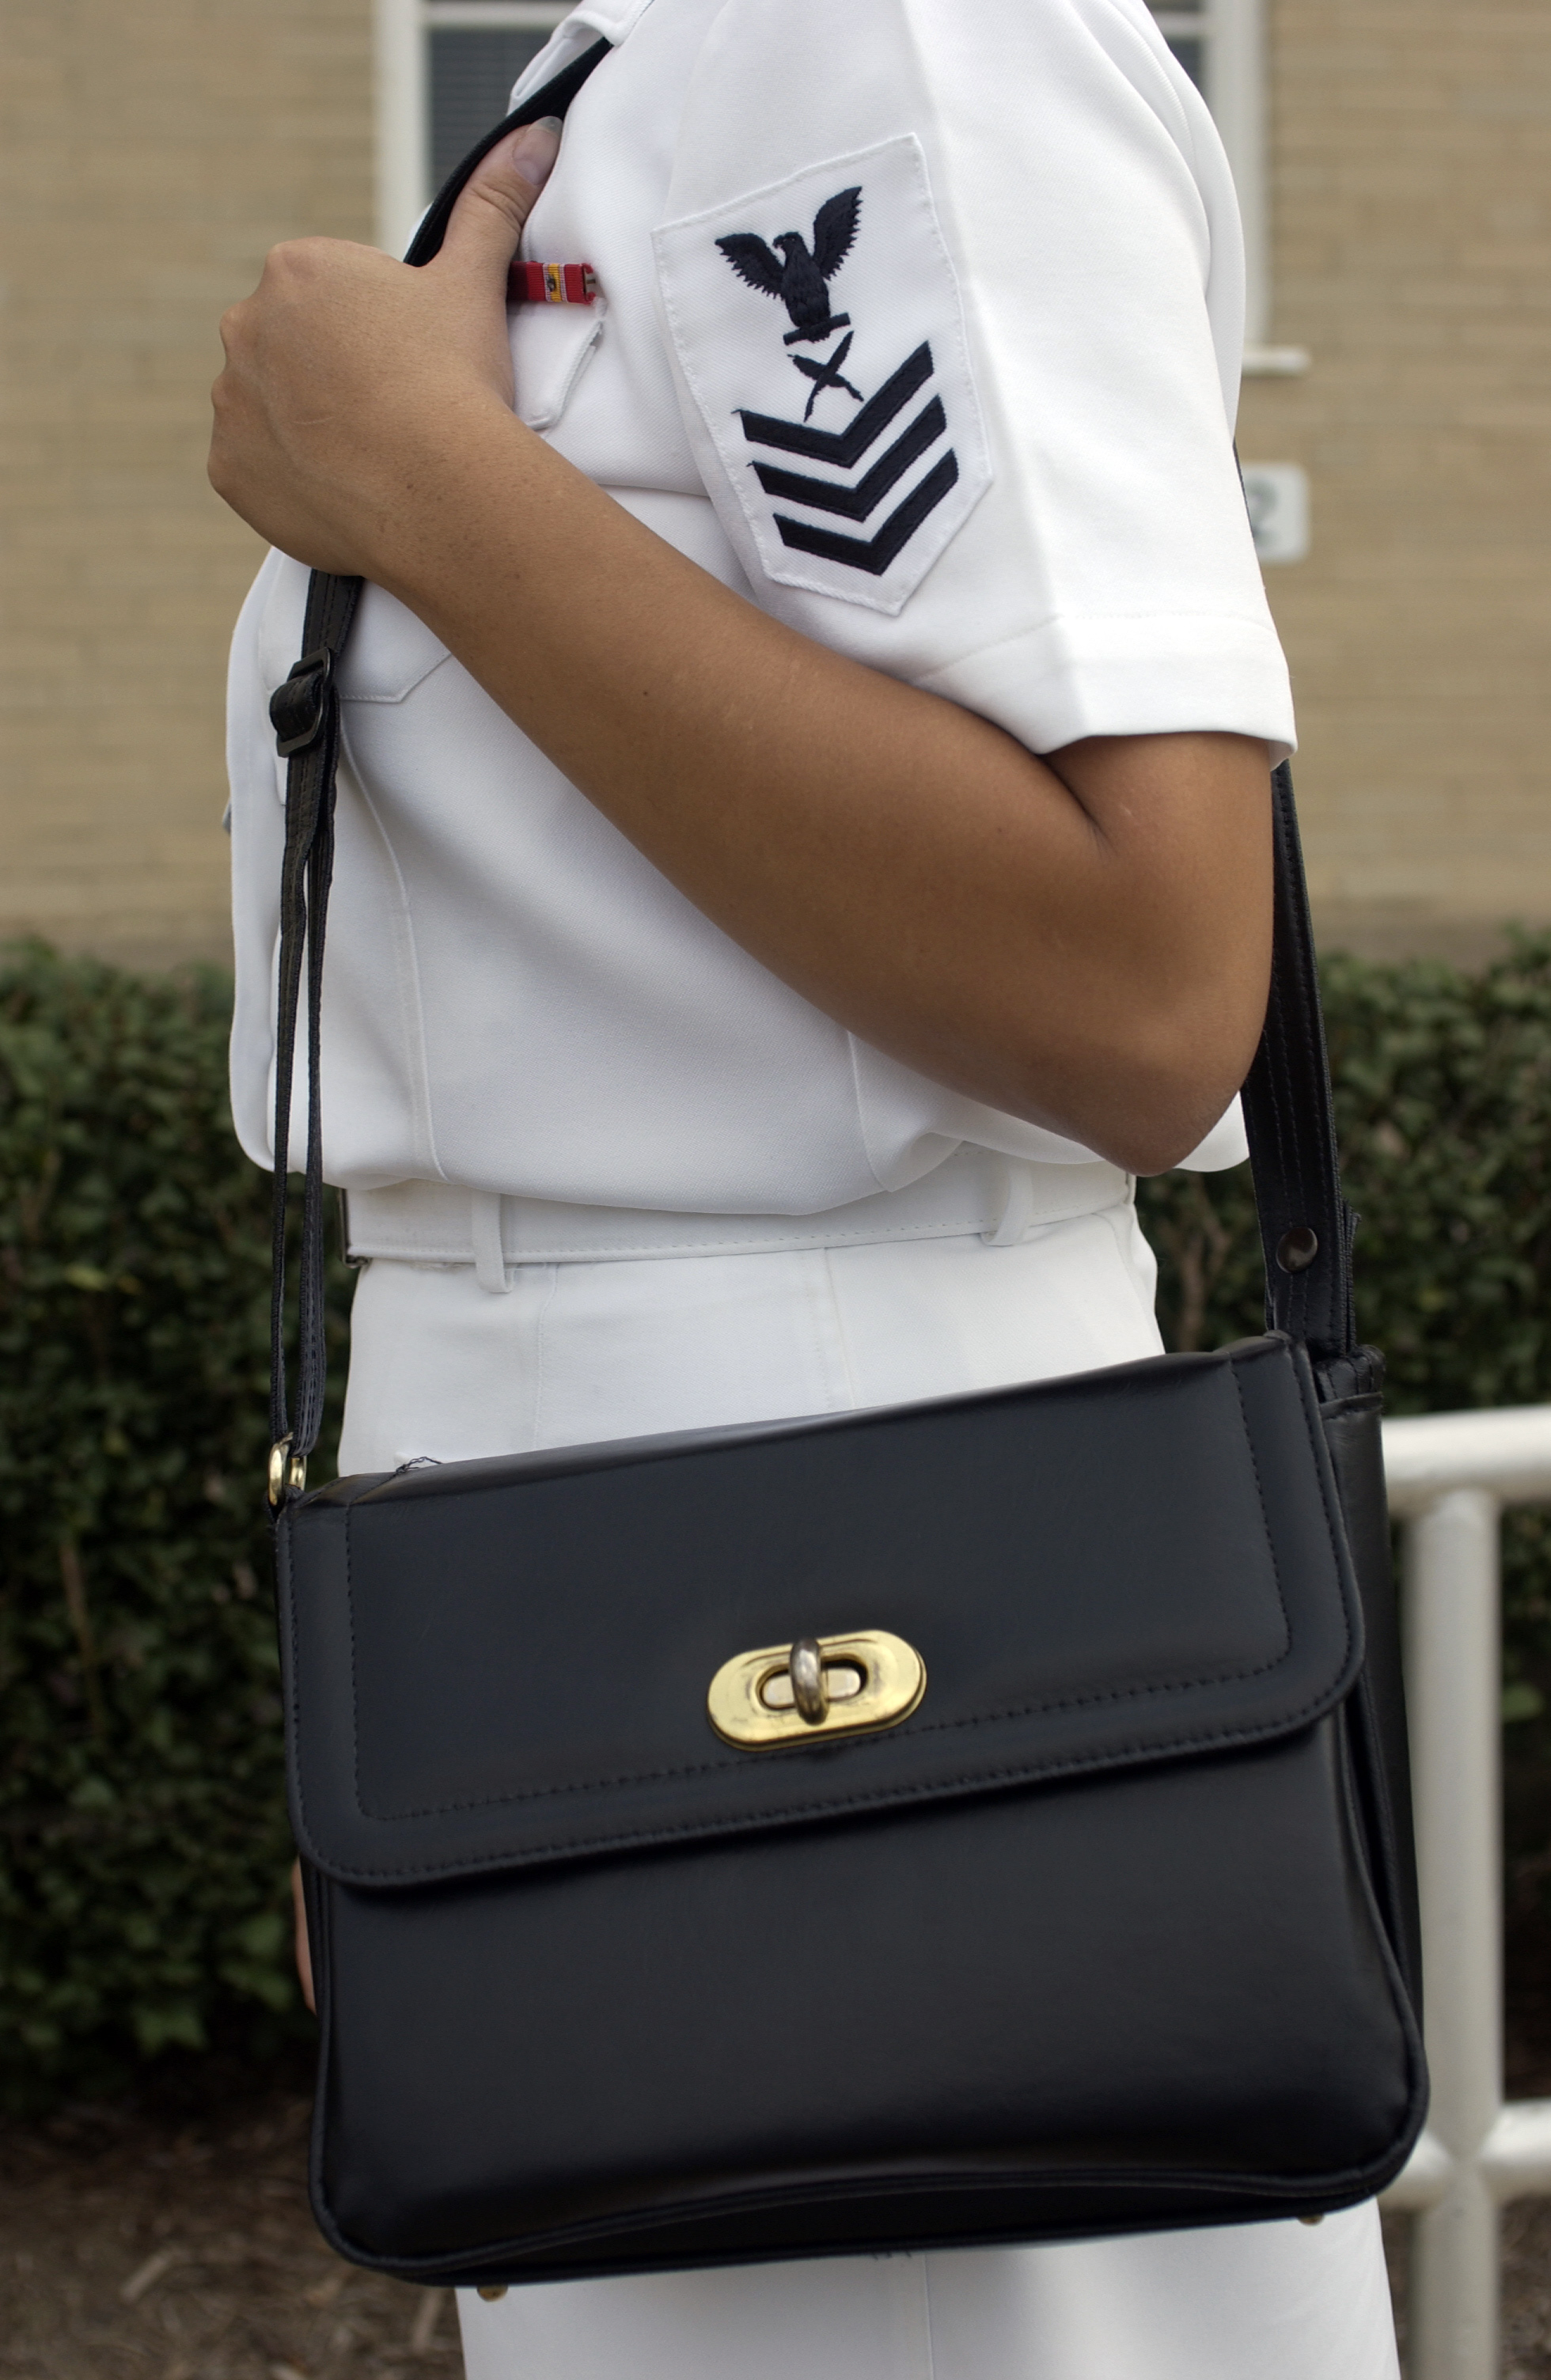 Navy: Own Your Service's Pro-Female Legacy